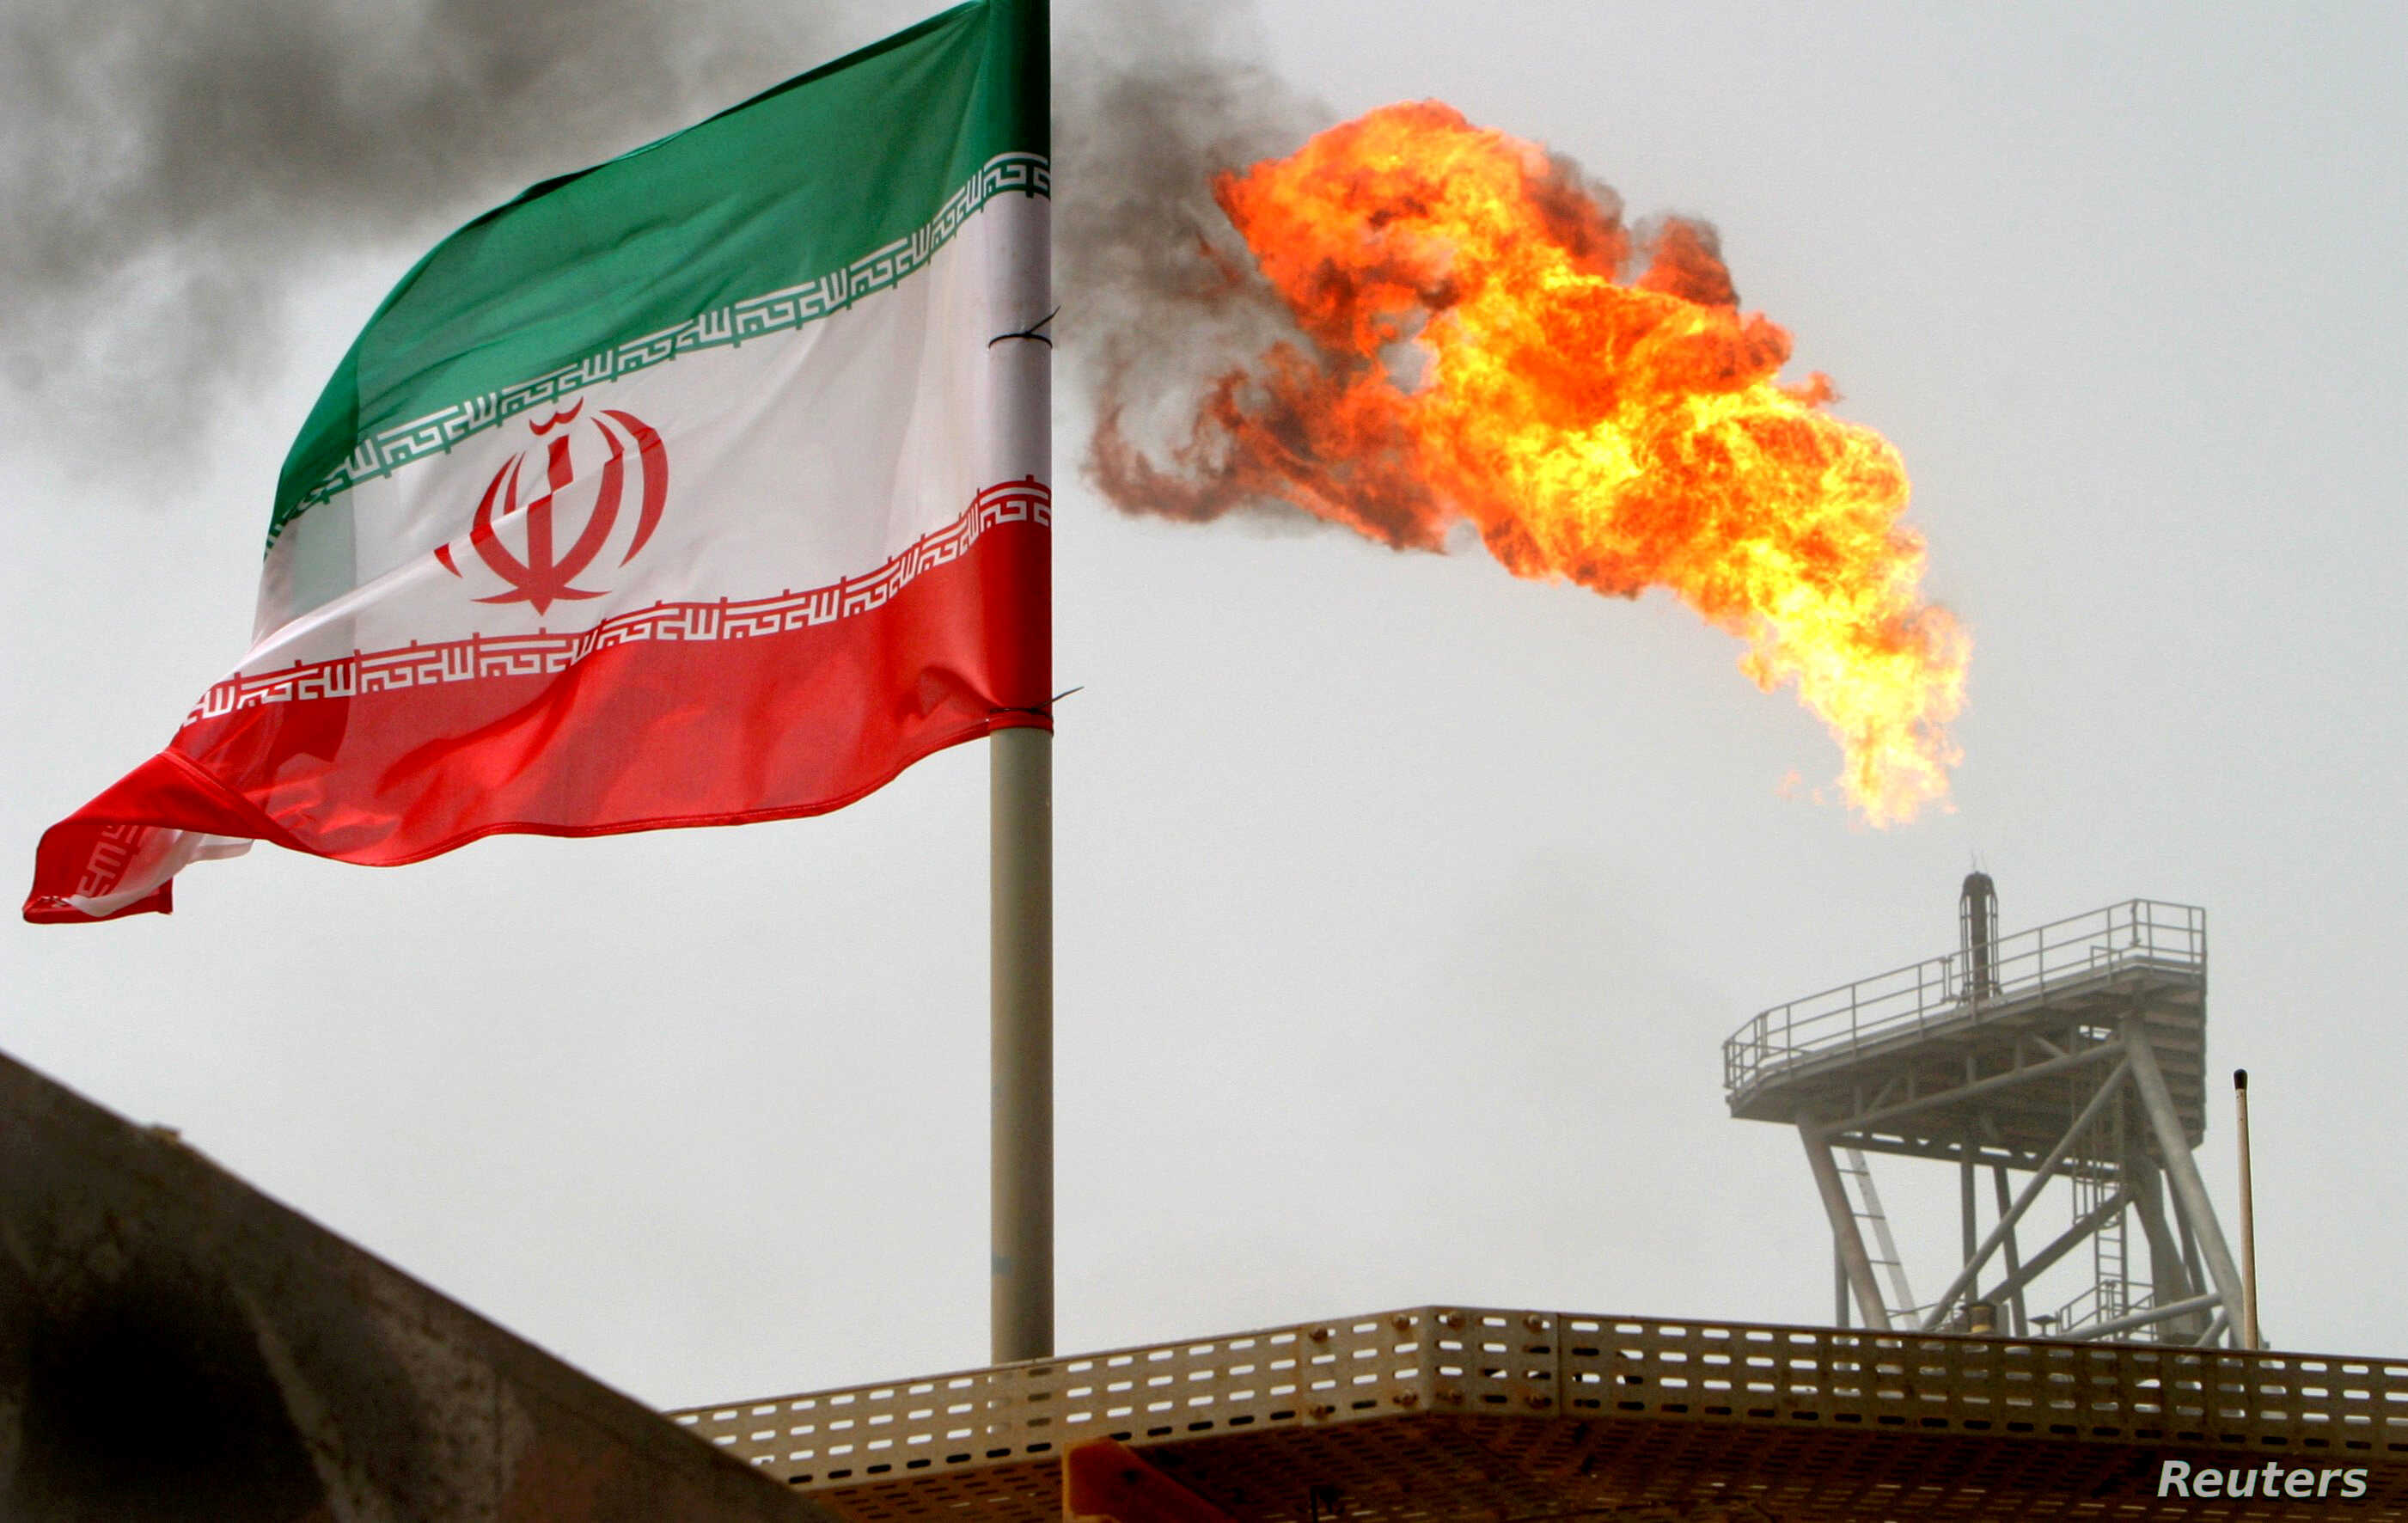 Hit by Sanctions, Asia's Iran Crude Oil Imports Drop to 3